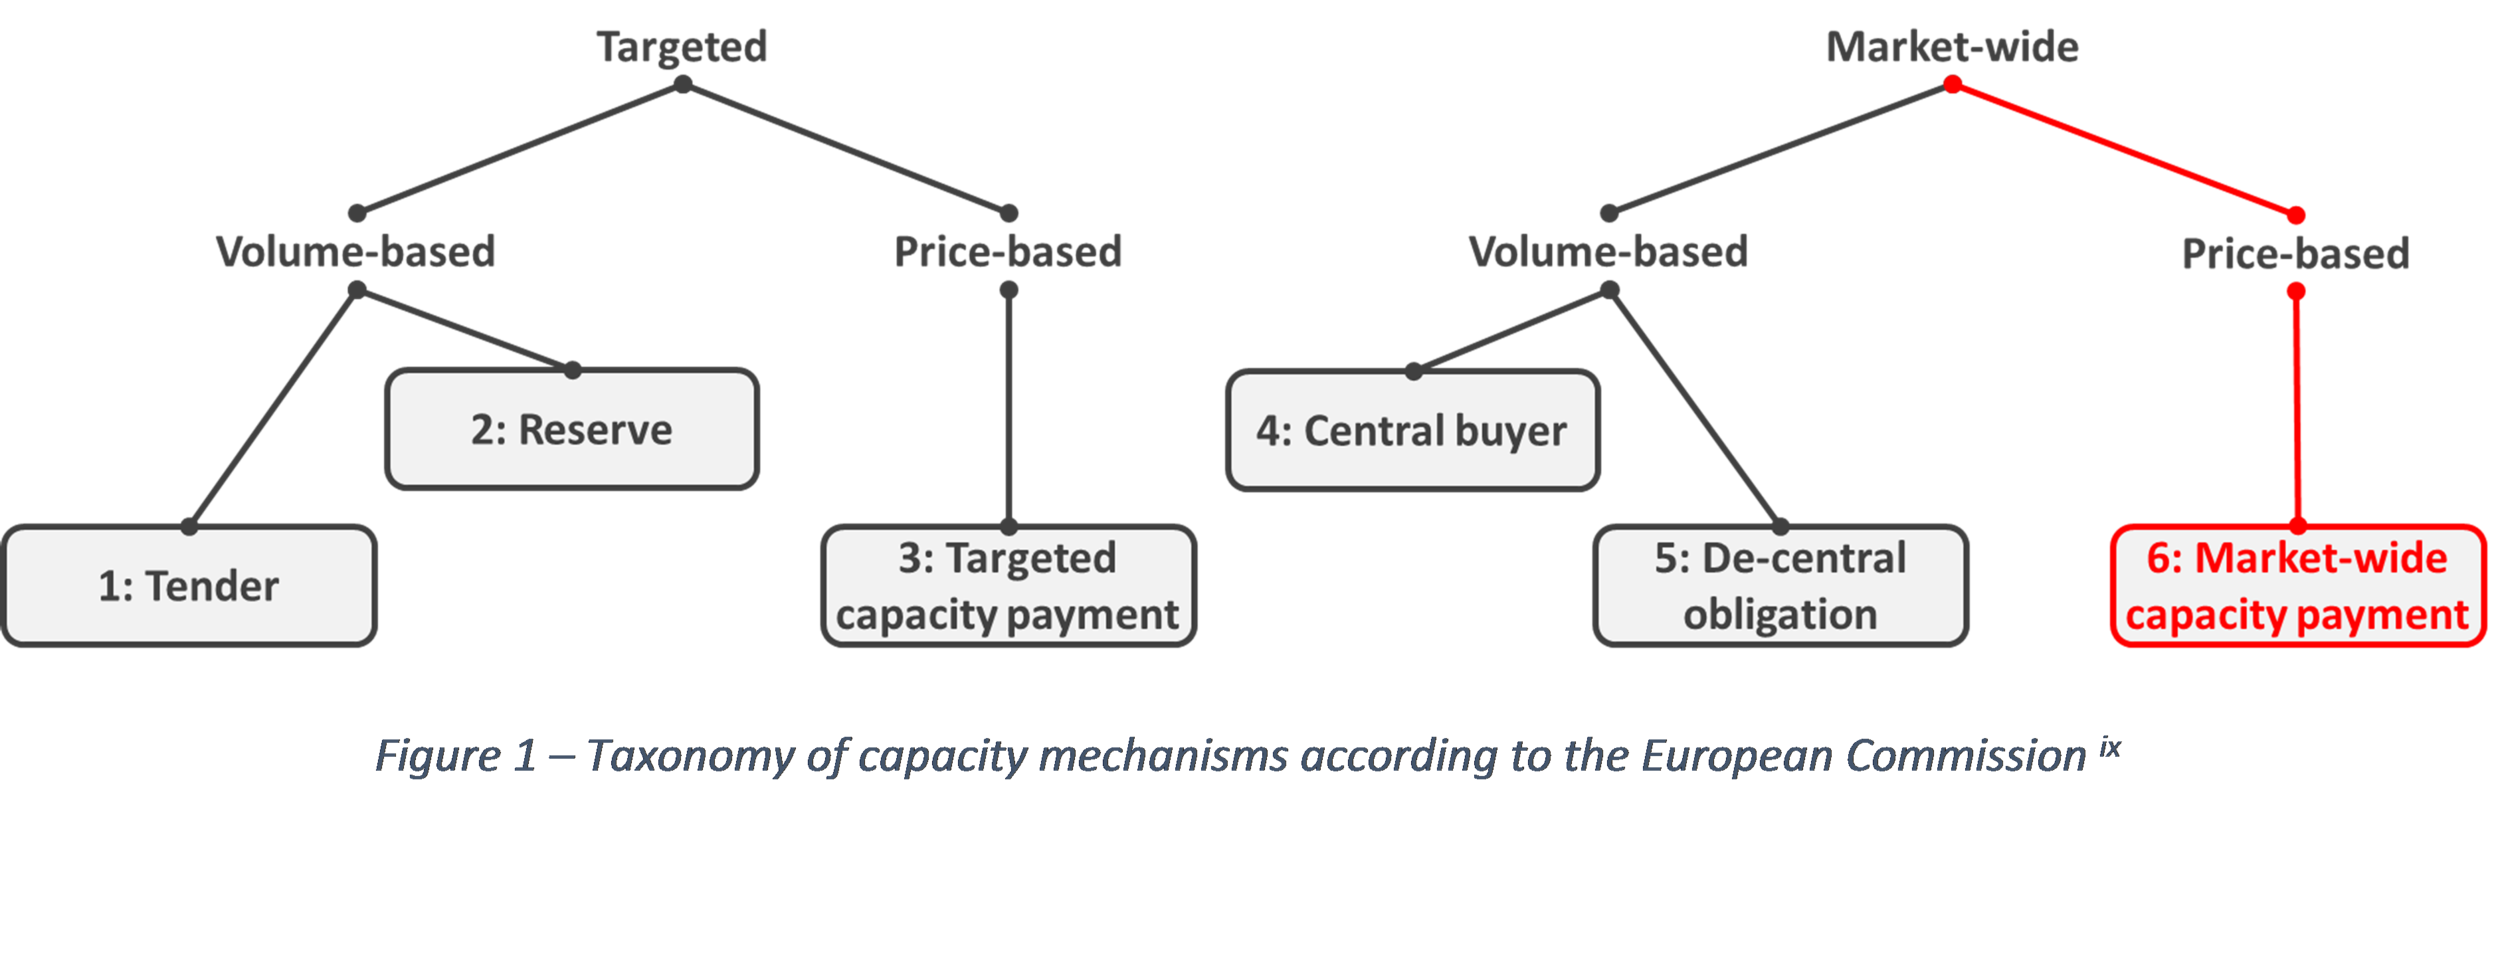 Taxonomy of capacity mechanisms according to the European Commission